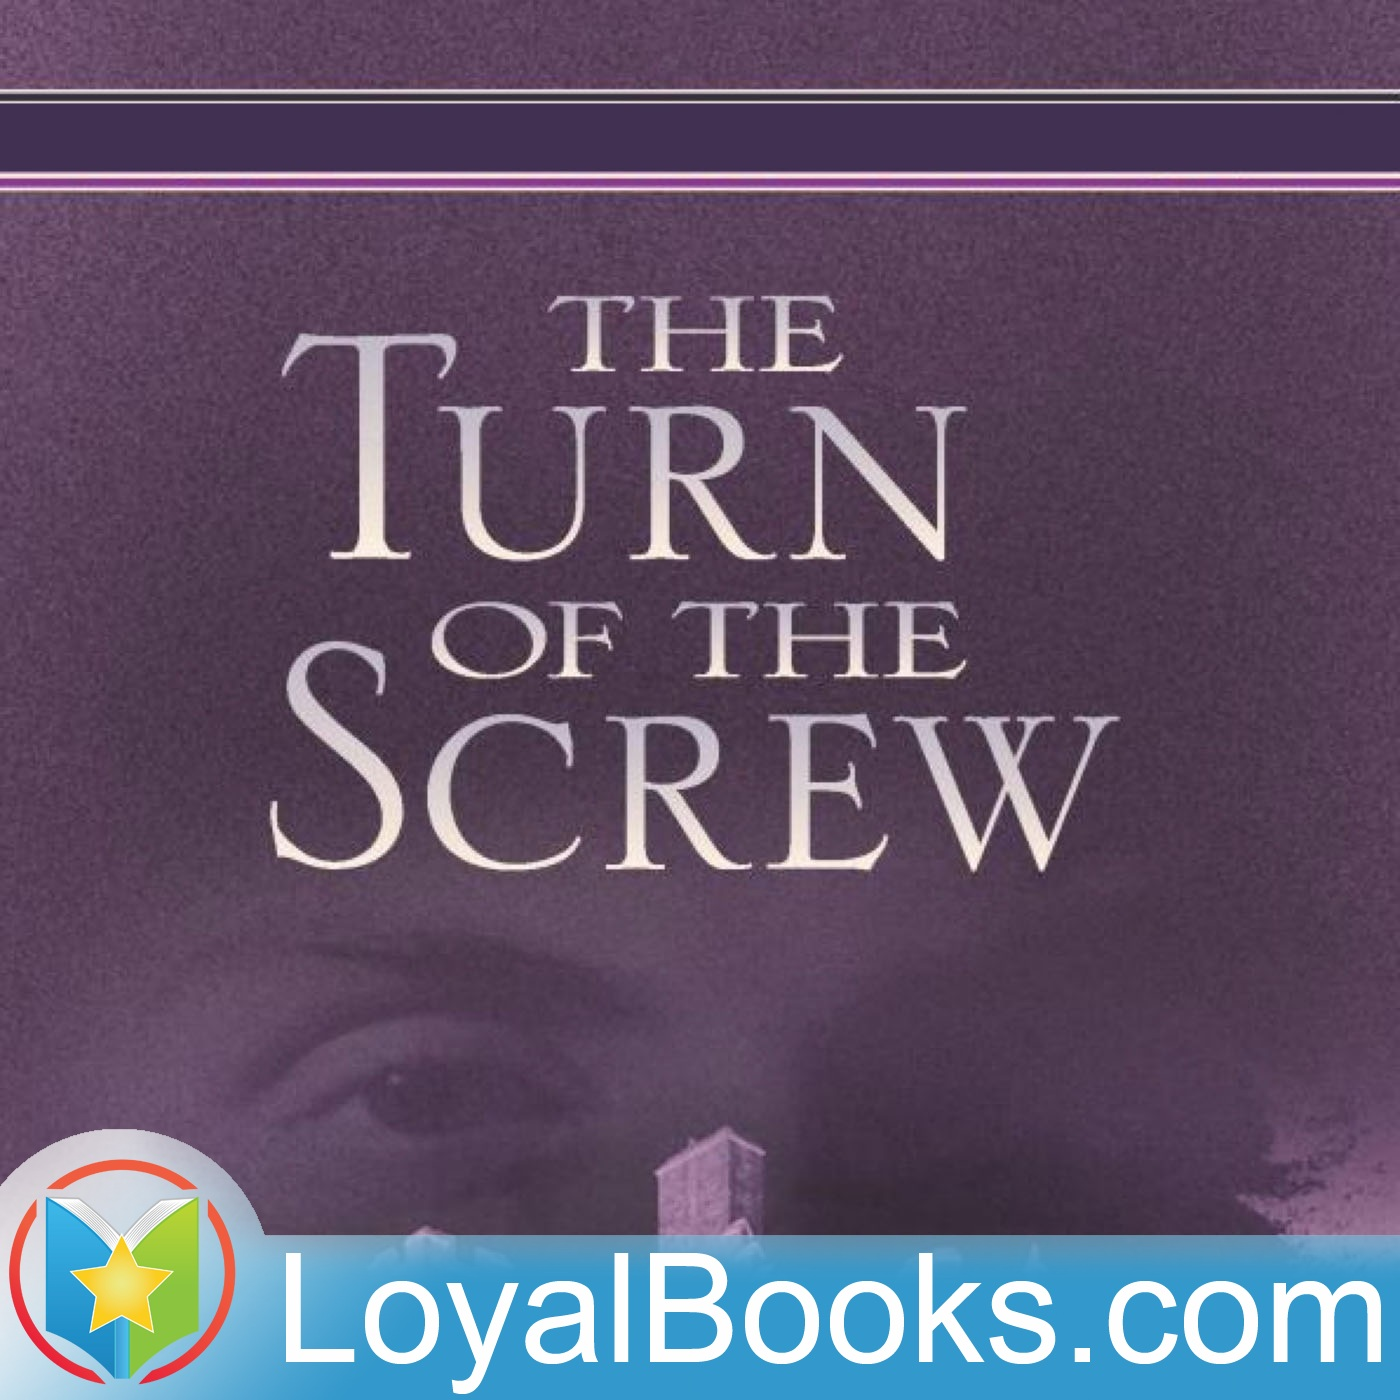 <![CDATA[The Turn of the Screw by Henry James]]>